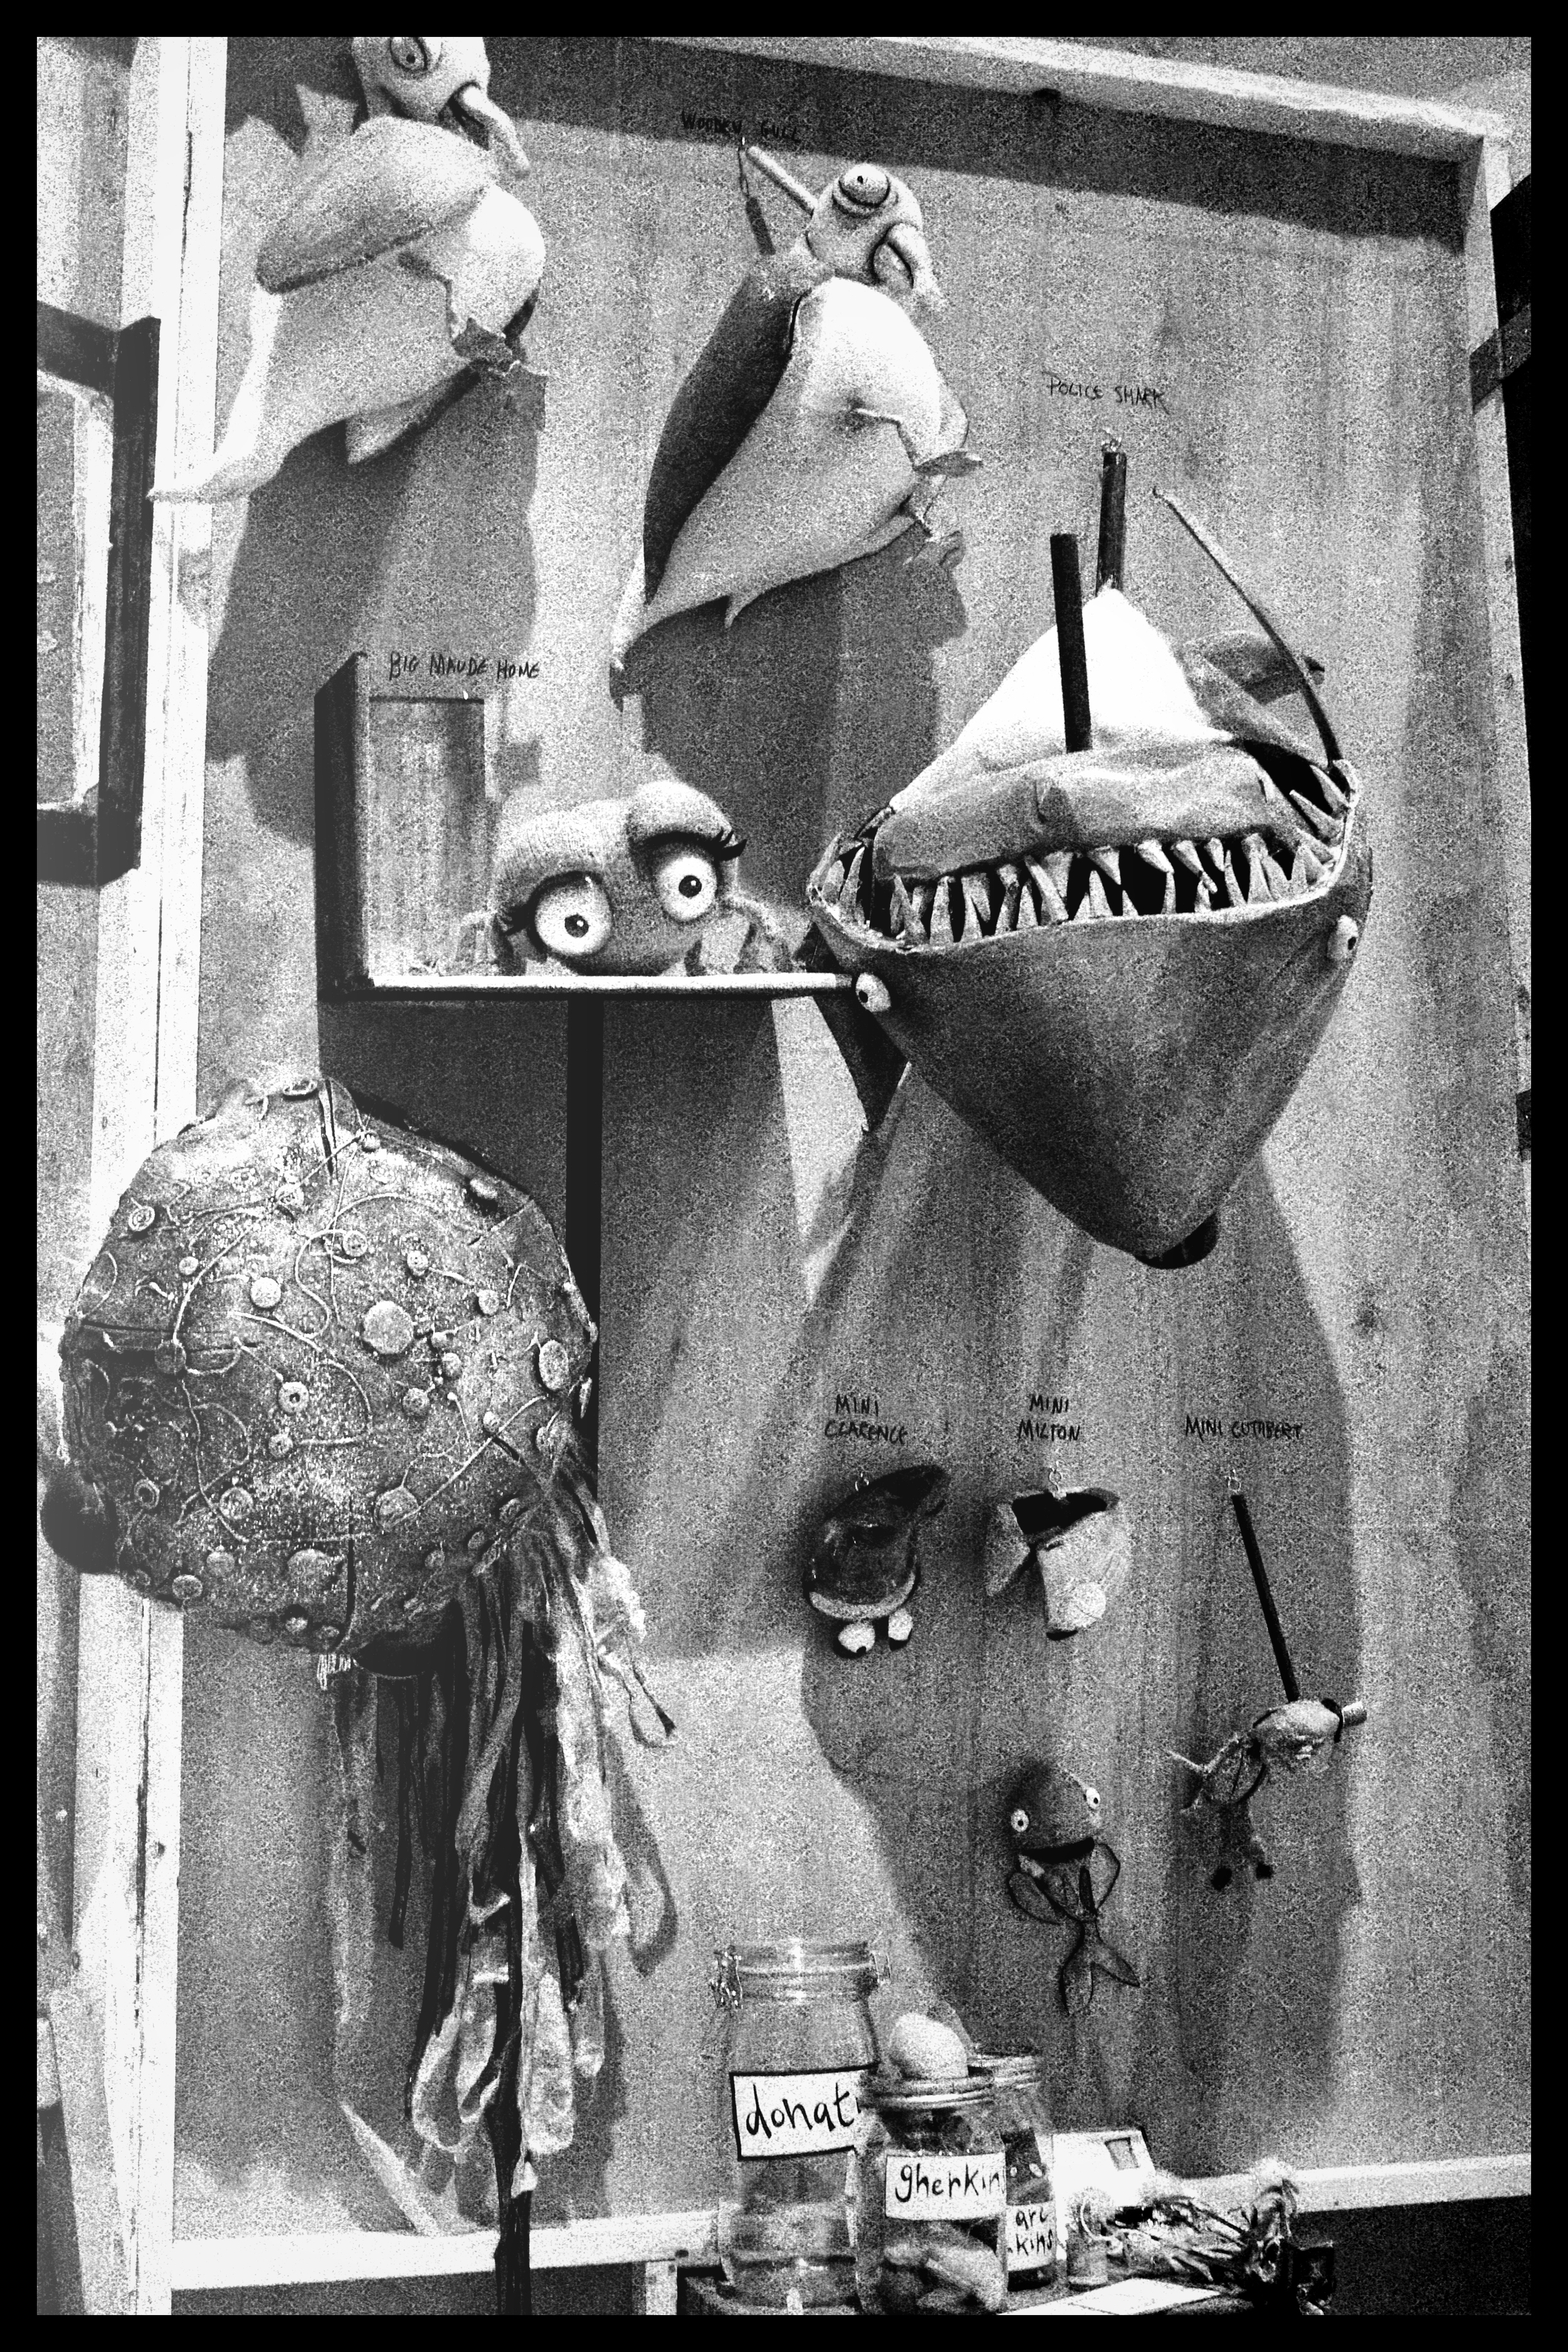 Behind the stage flats, each of the 30-ish puppets had their own little labelled hook. It took on a strange life as a weird looking 'dead puppet' trophy wall complete with great white shark and jars of dead sea-cucumbers. 2013. Image: Ulysses Black